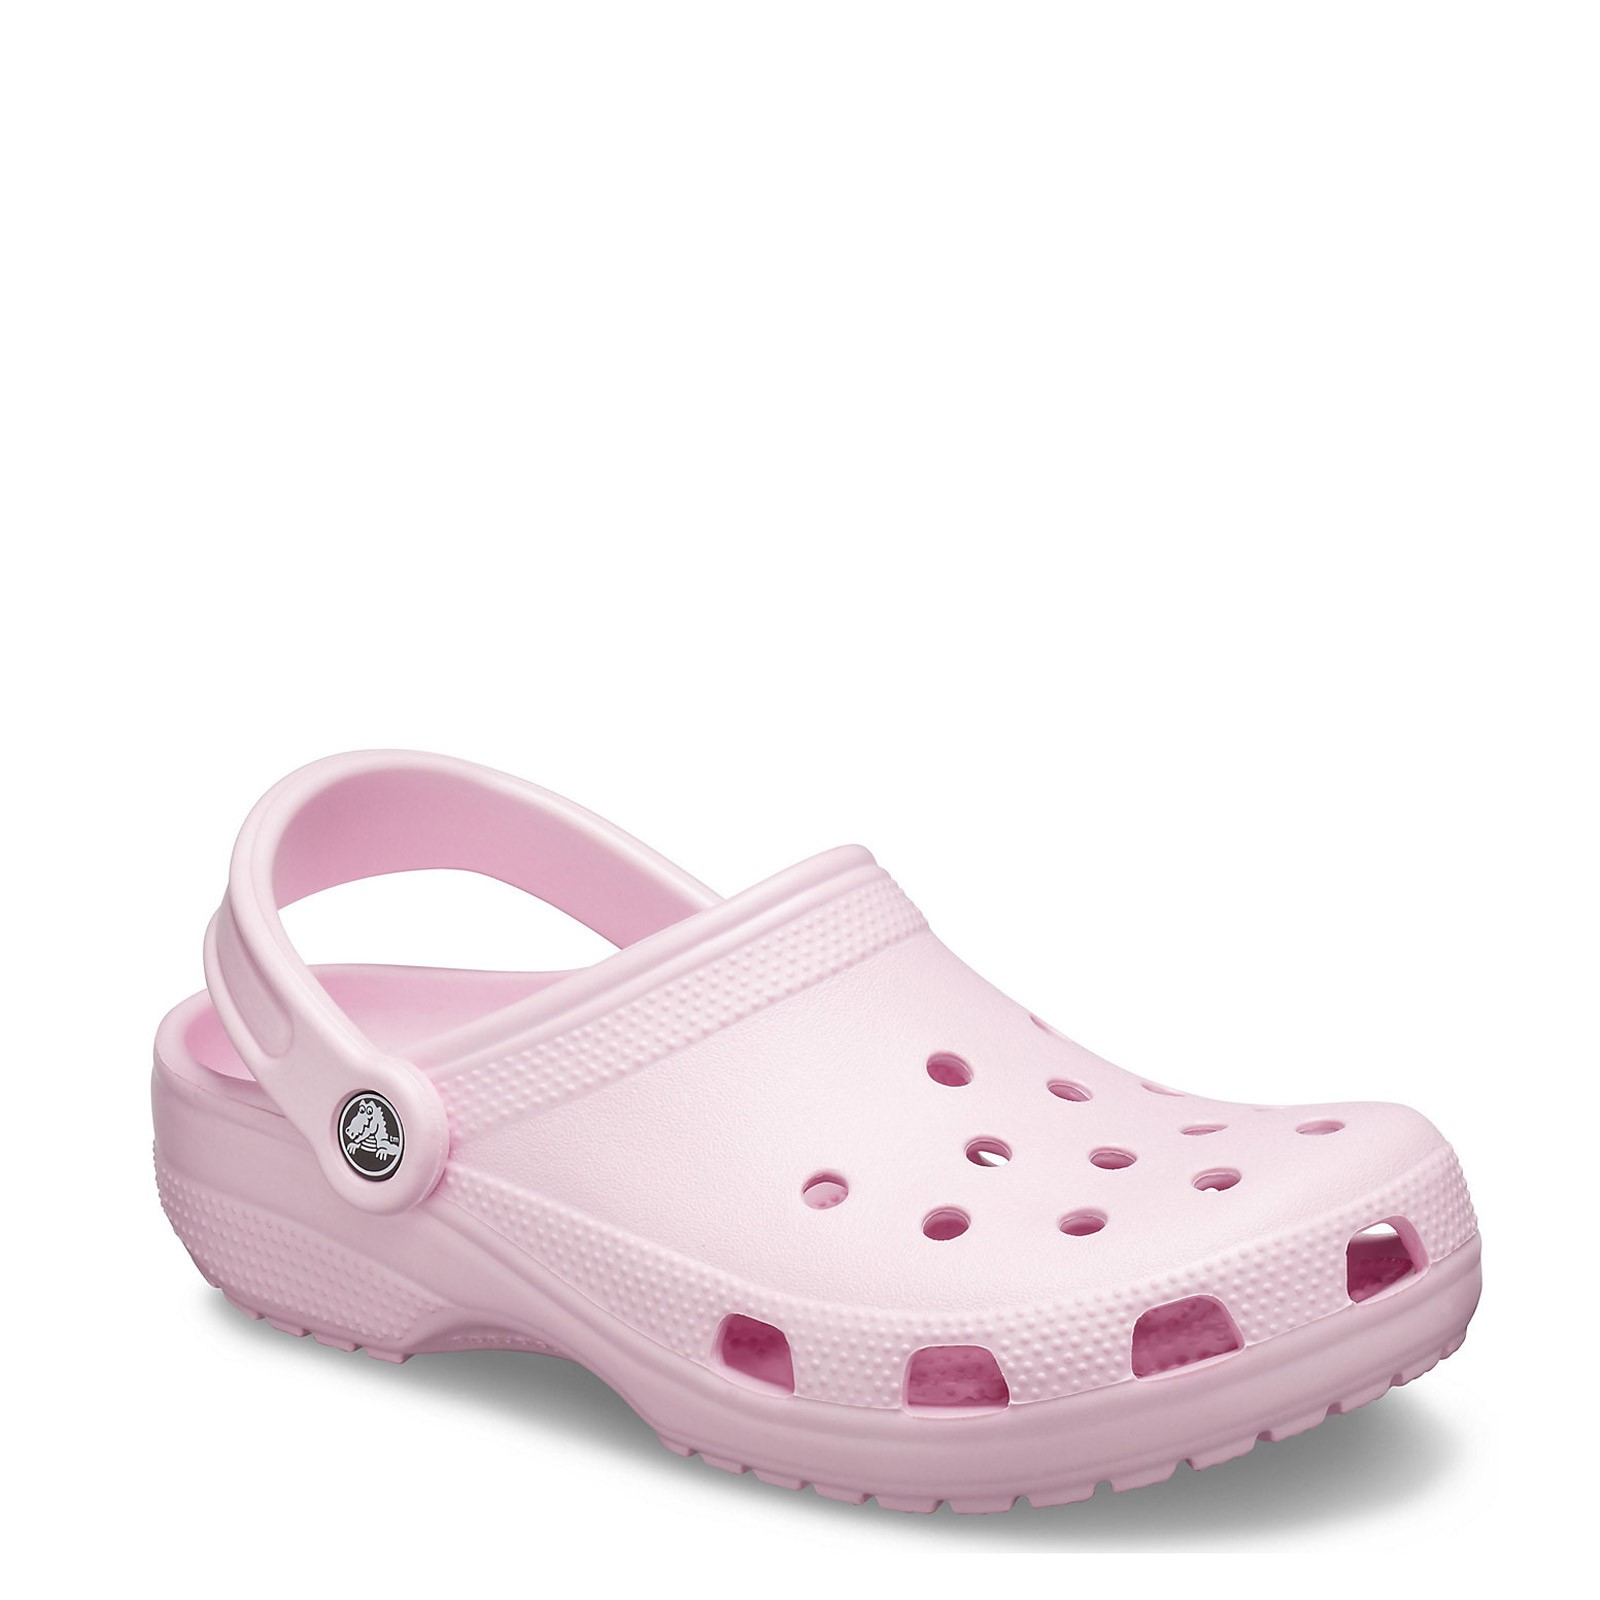 Women's Crocs, Cayman Clogs